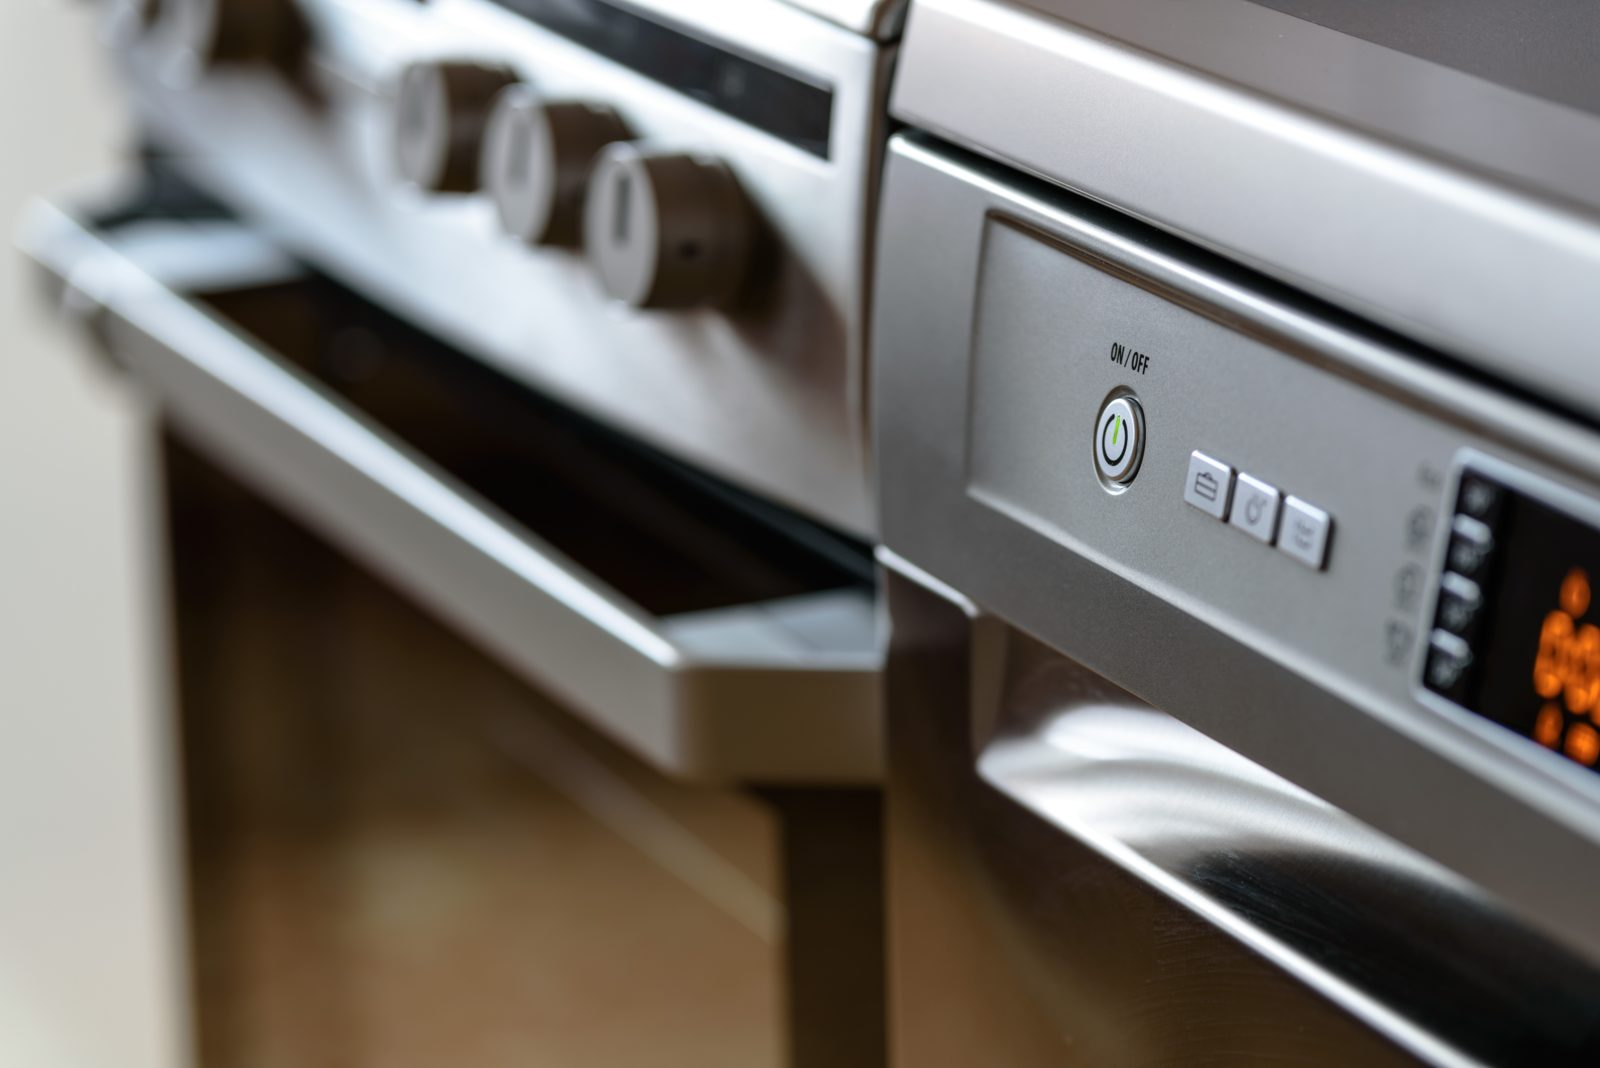 Learn about the food service appliances that every food business needs.